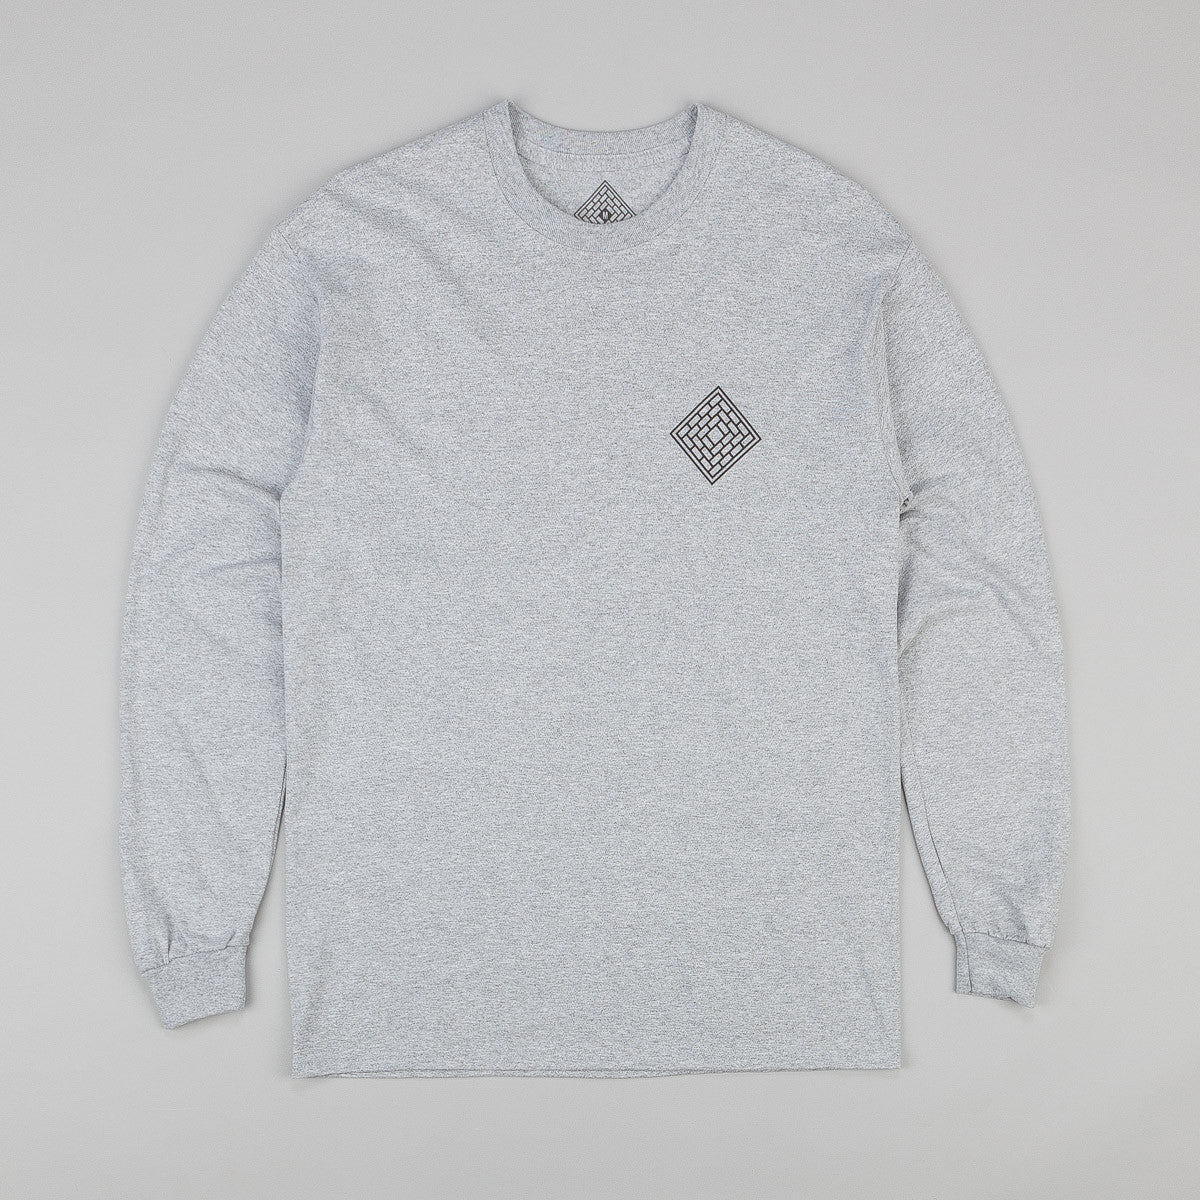 The National Skateboard Co Fade Rose Long Sleeve T-Shirt